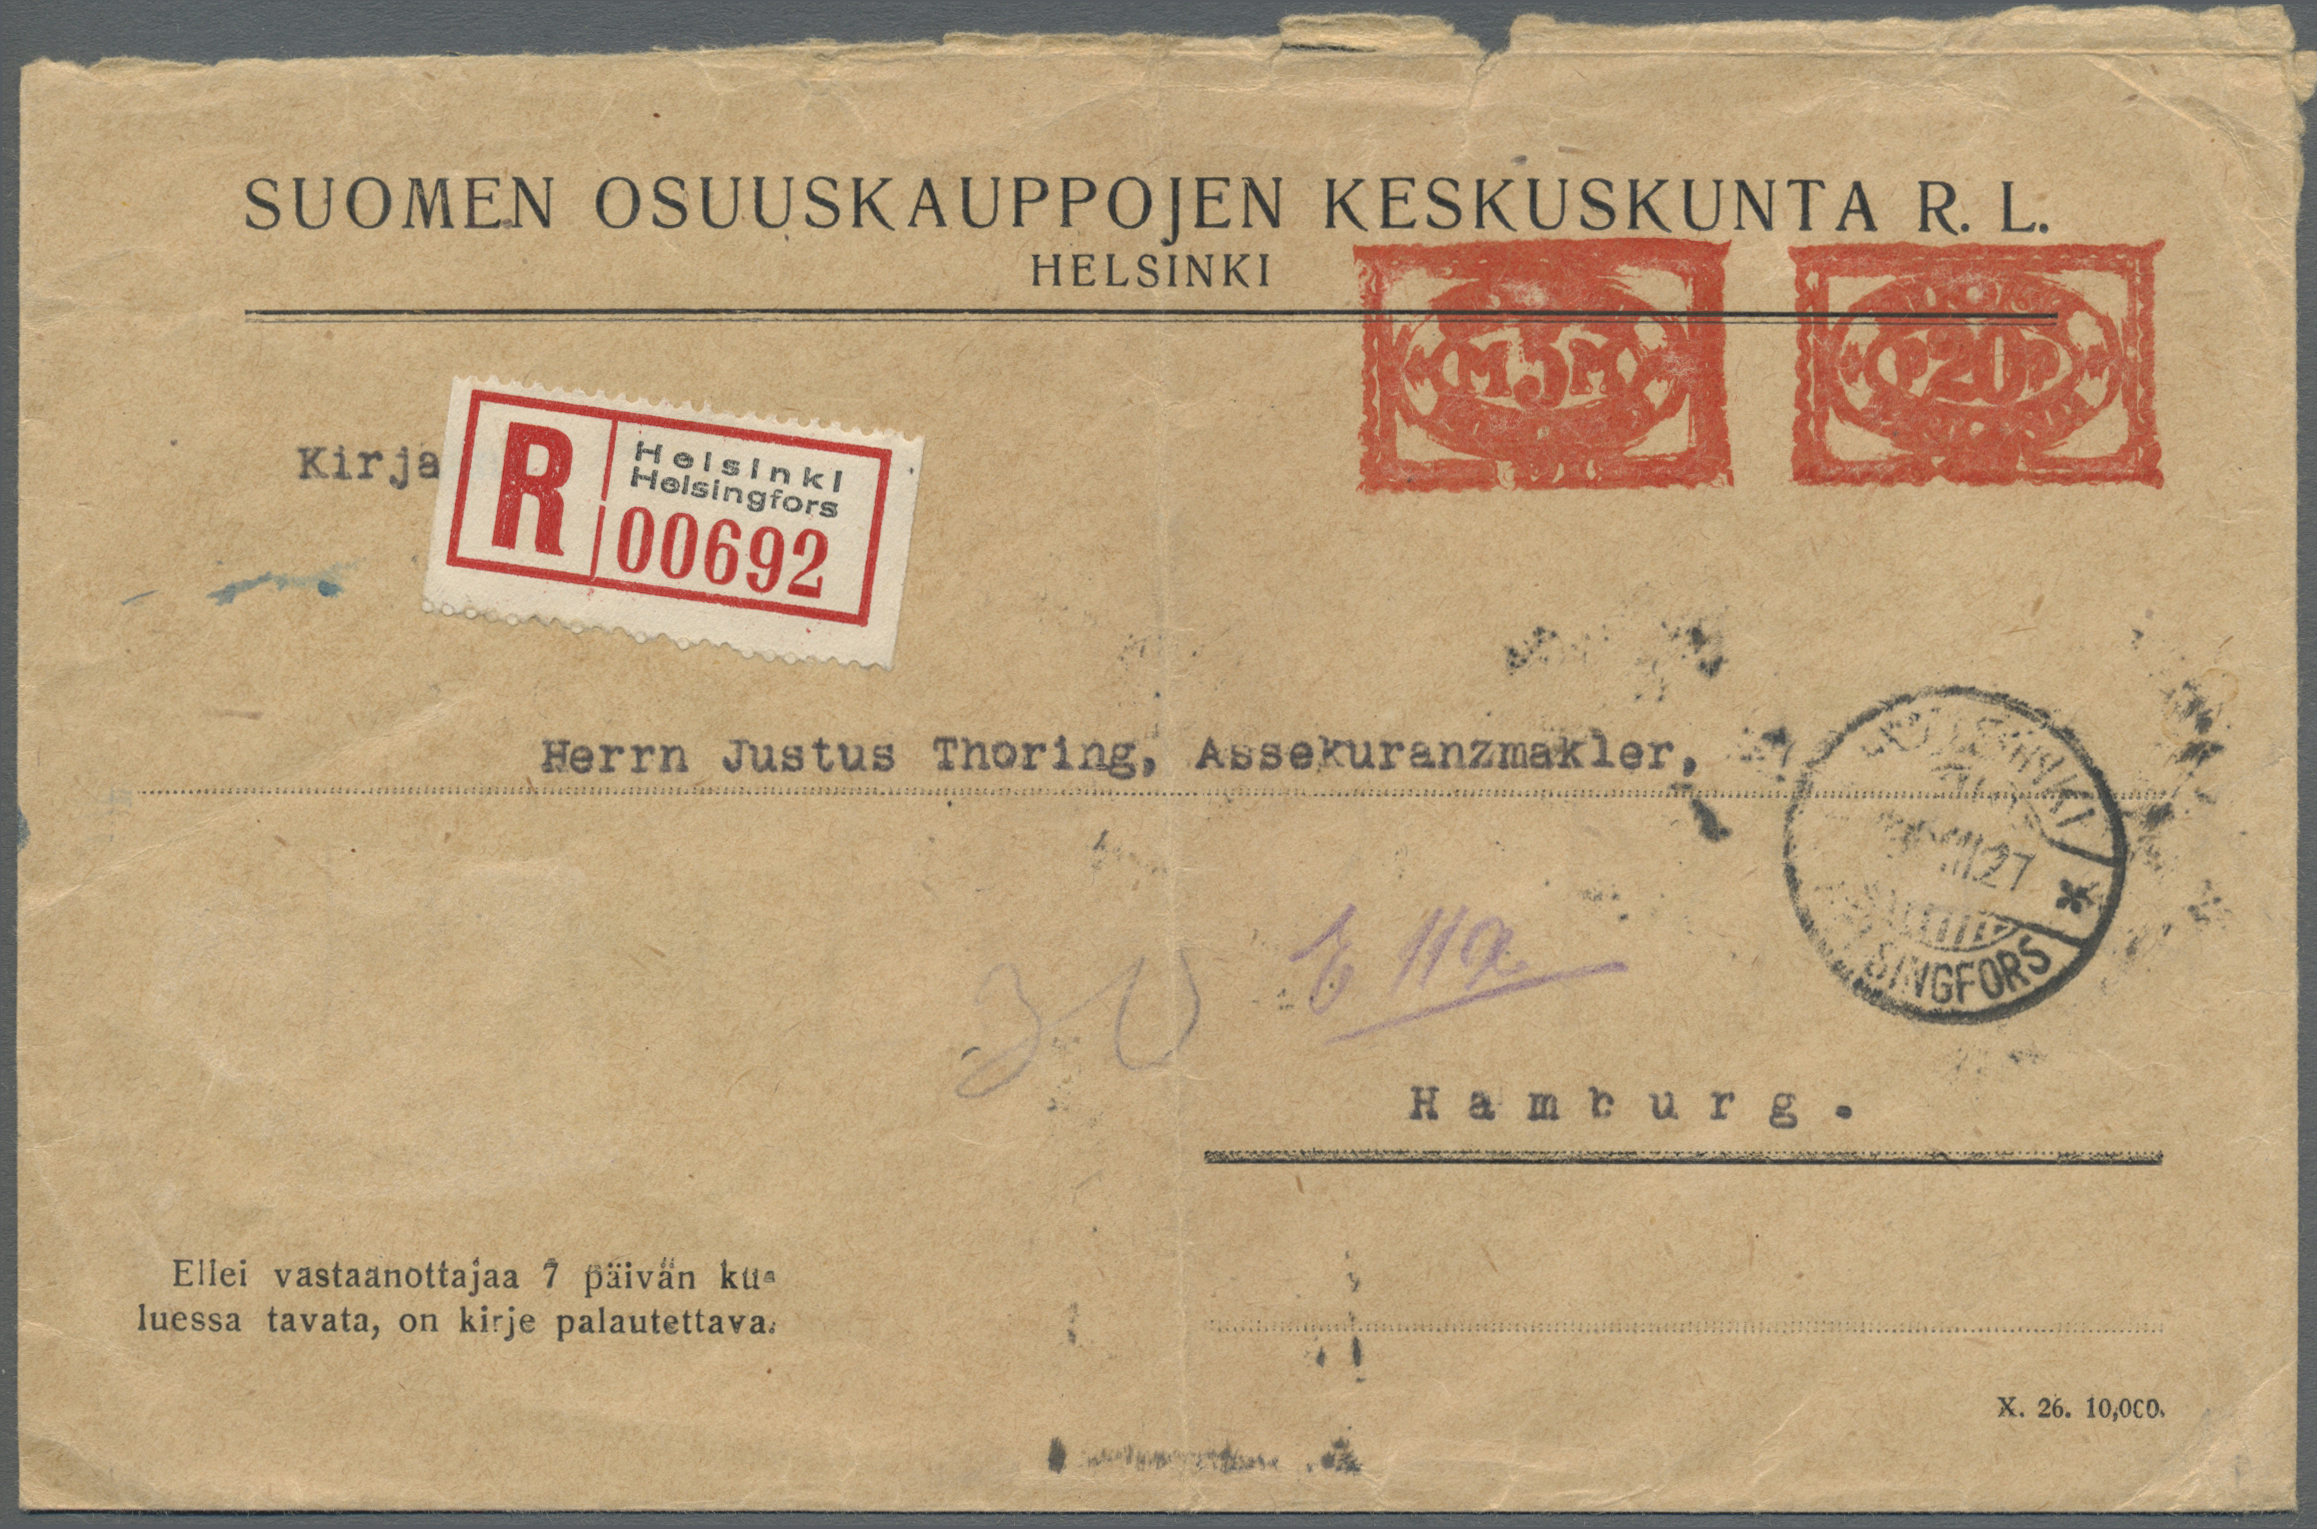 Lot 15858 - Finnland - Besonderheiten  -  Auktionshaus Christoph Gärtner GmbH & Co. KG Single lots Philately Overseas & Europe. Auction #39 Day 4